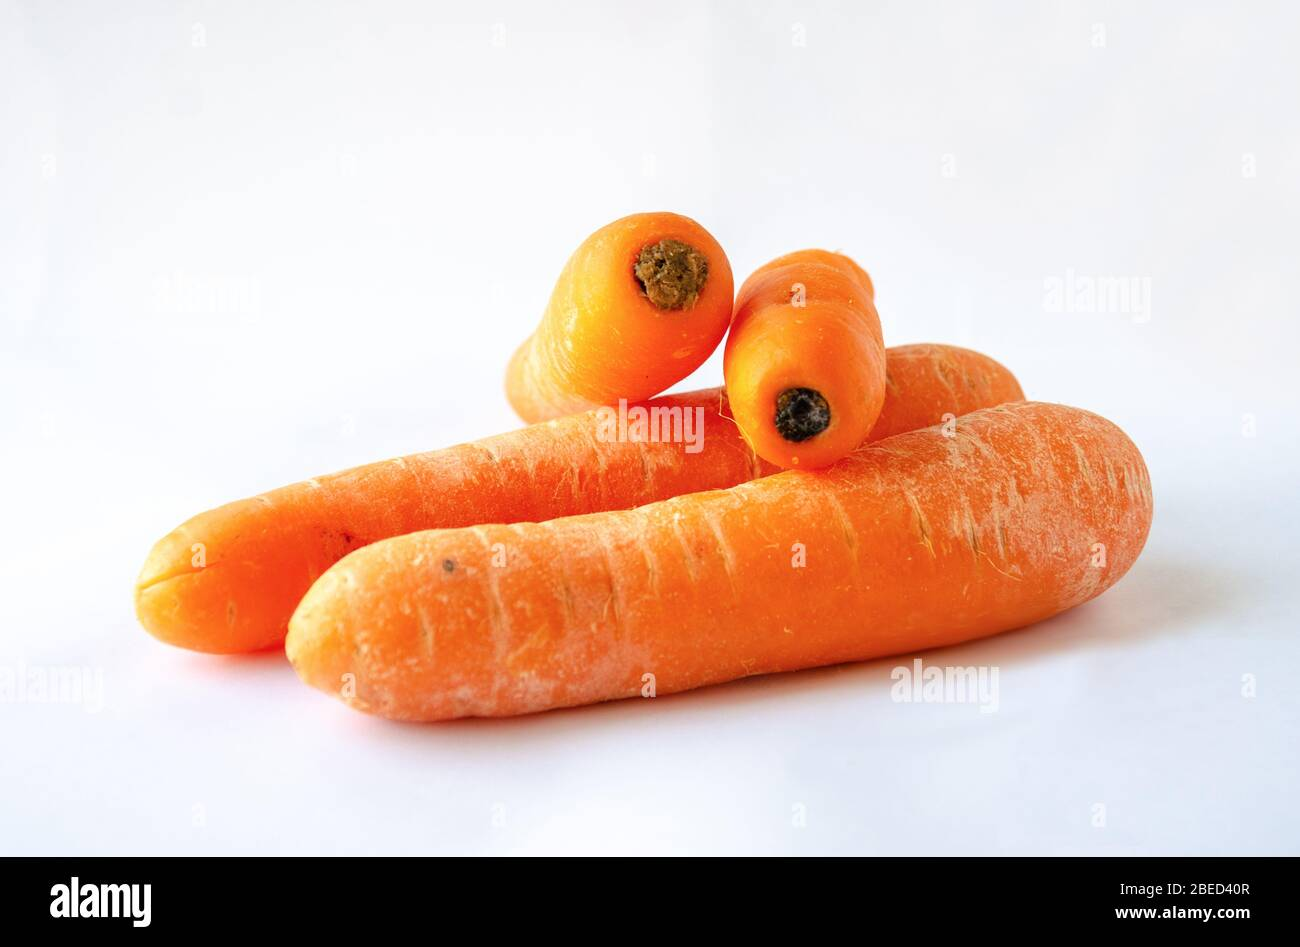 raw-carrots-shot-against-a-white-background-2BED40R.jpg